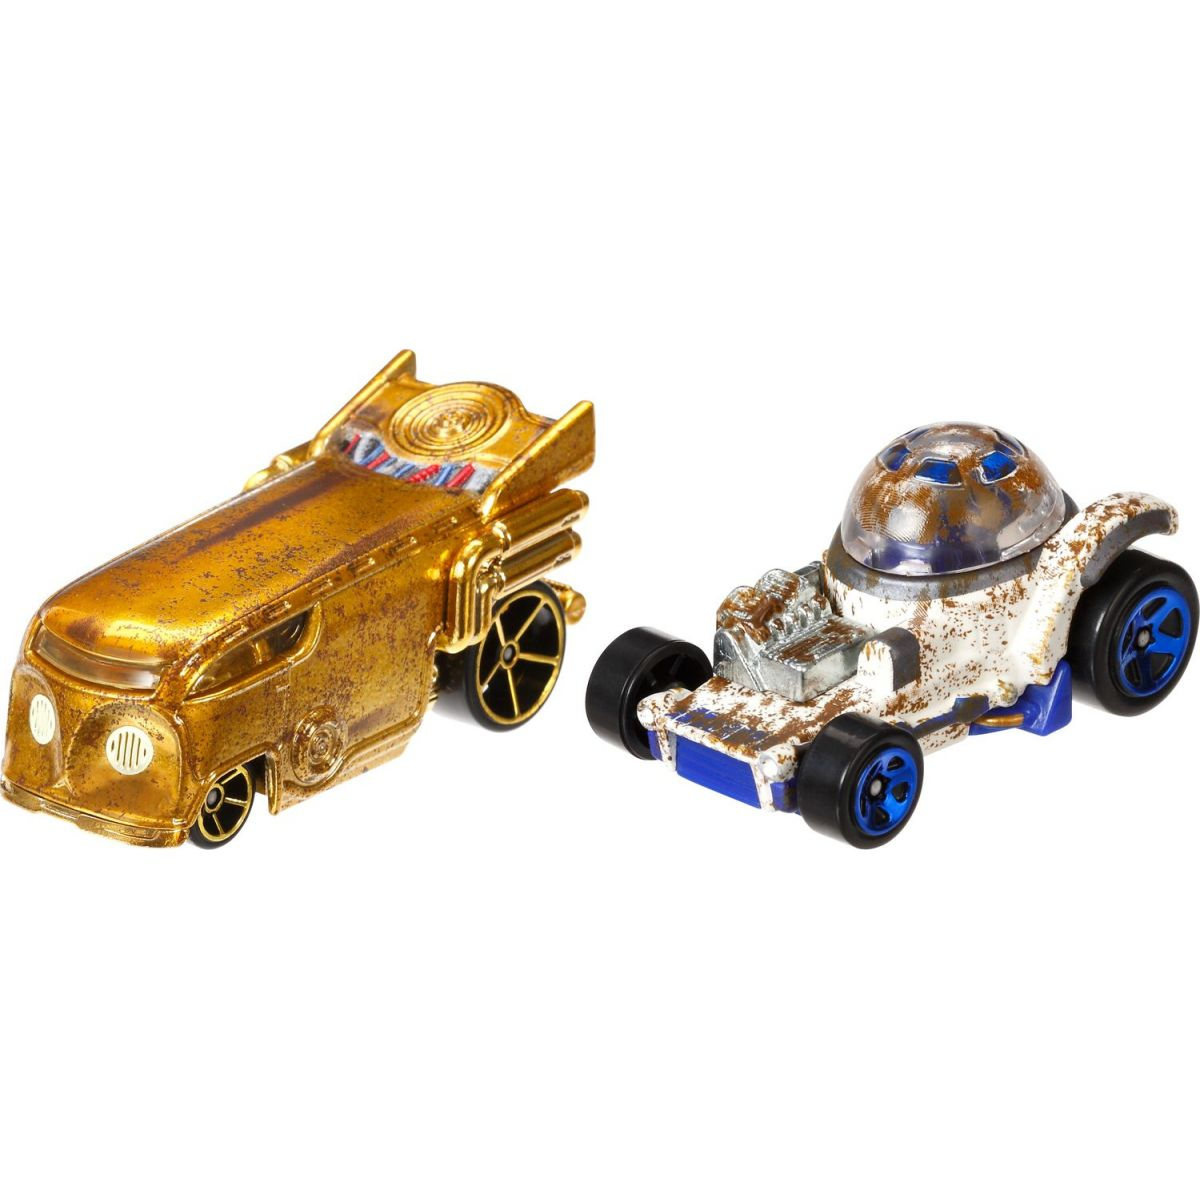 Hot Wheels Star Wars Angličák 2ks - DXR03